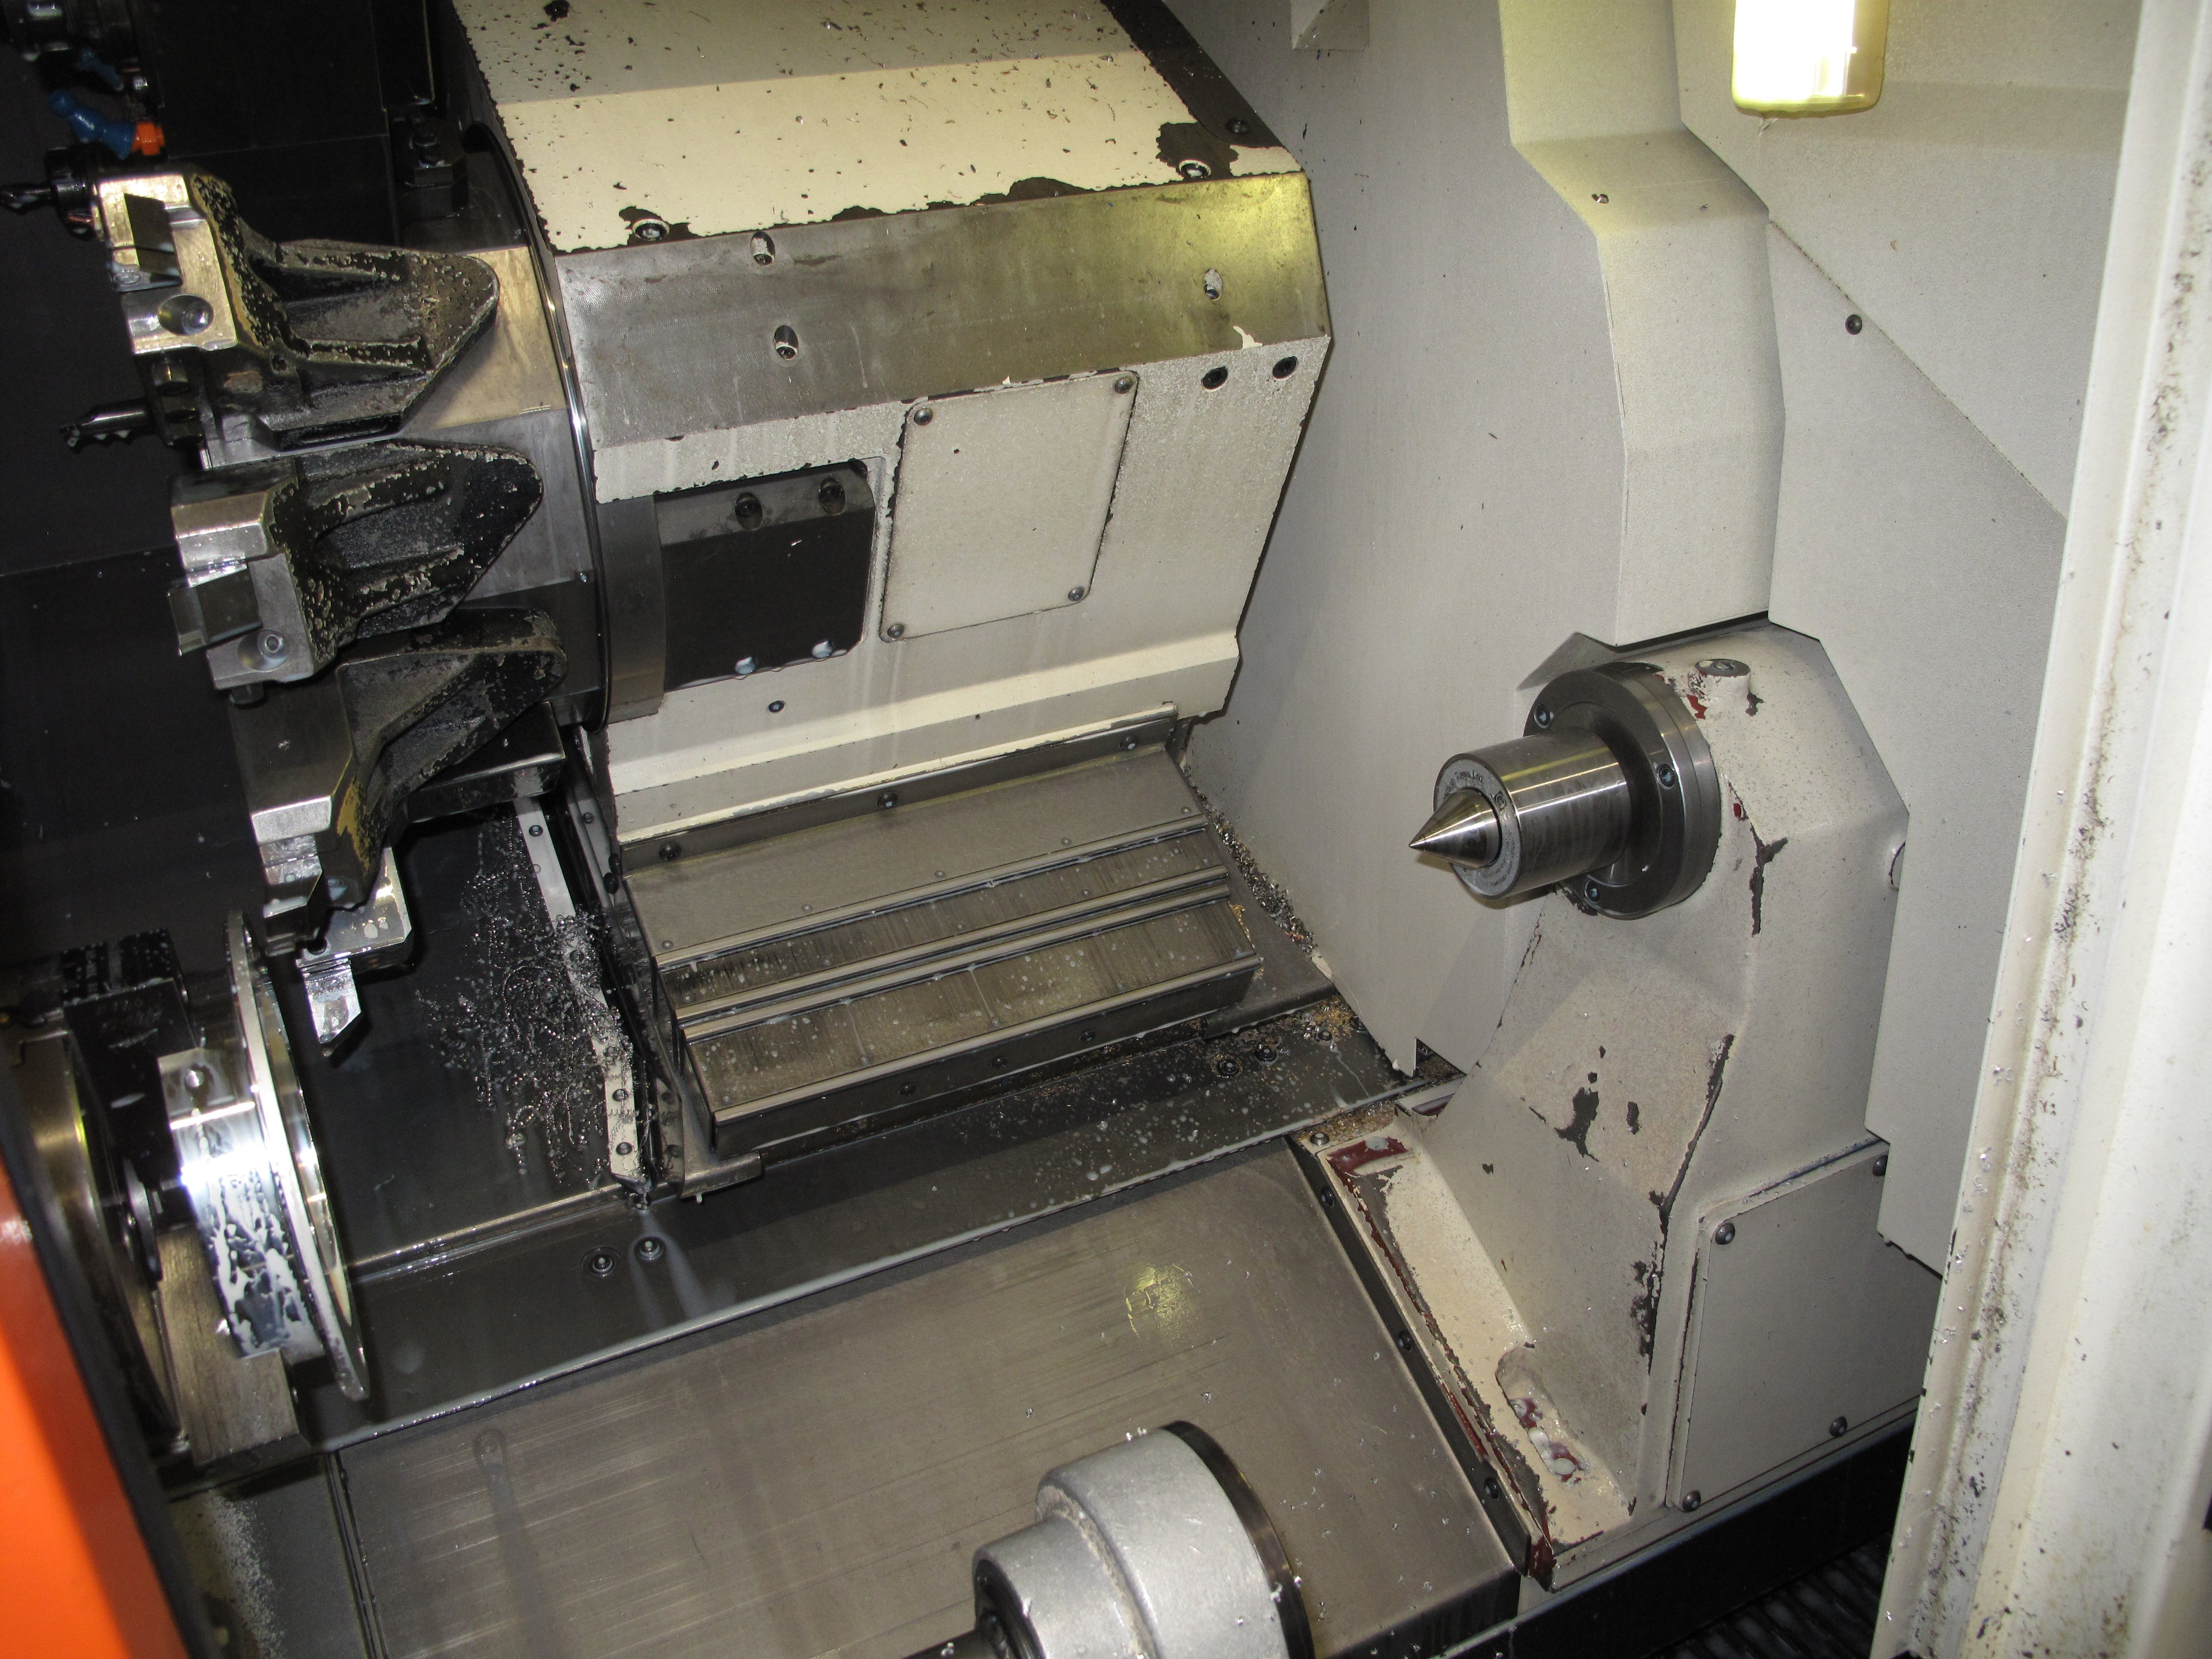 QTNX 200II MY Tailstock and turret